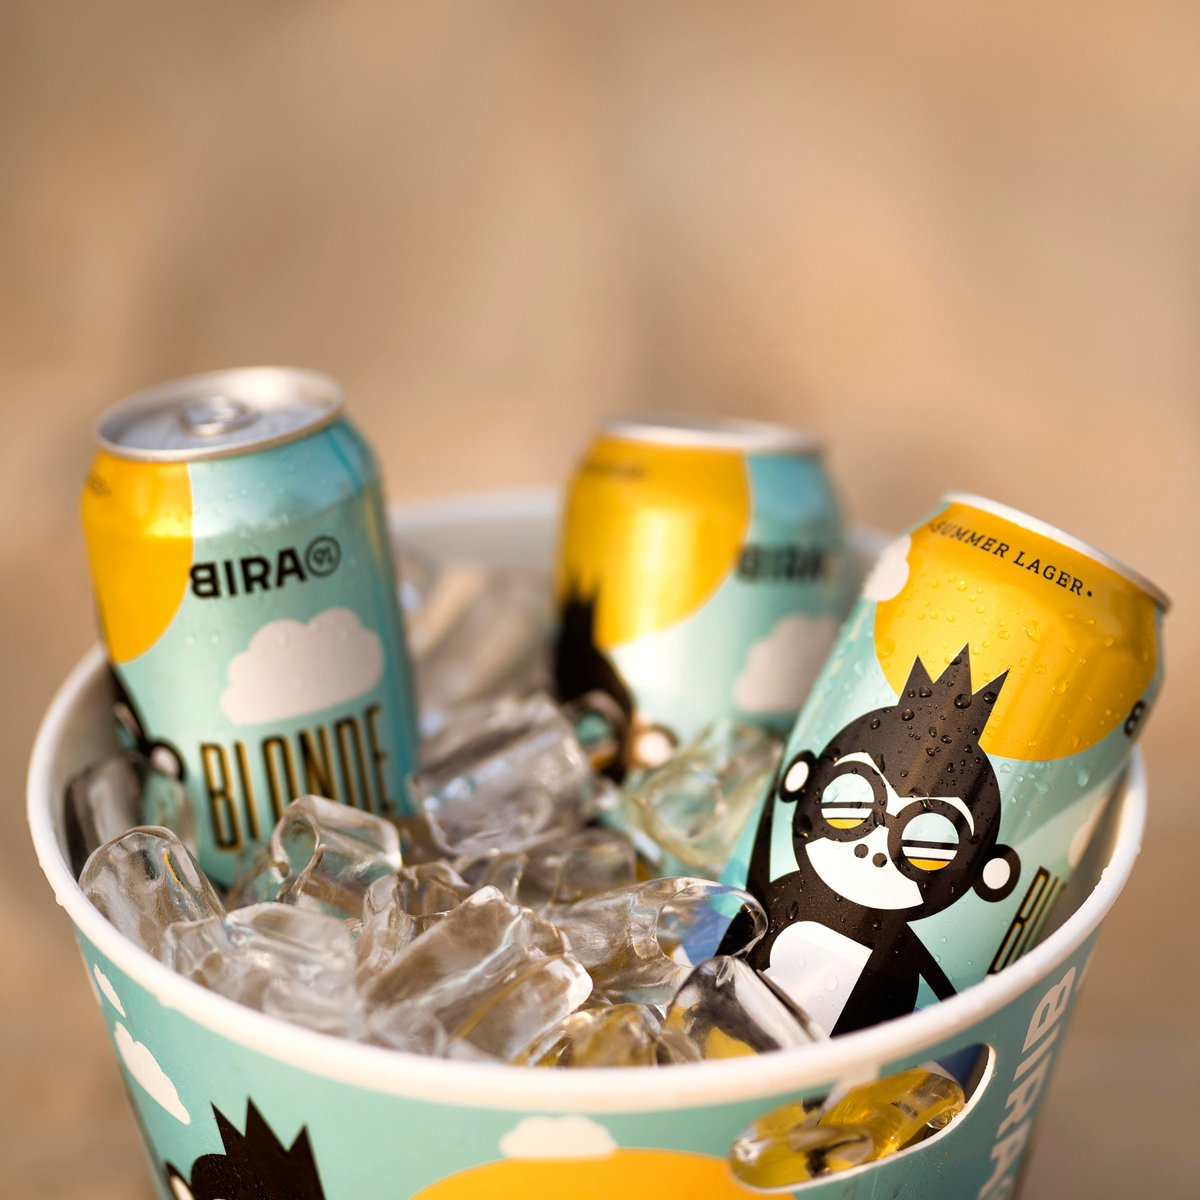 Sun's Out, Beers Out!☀🍻 Bright & sparkling is how we like it, and chilled at 0 - 3°C is what we recommend. Available in Pune, Mumbai, Thane and Delhi! Coming soon to the rest 🙌🏼#Bira91BlondeSummer